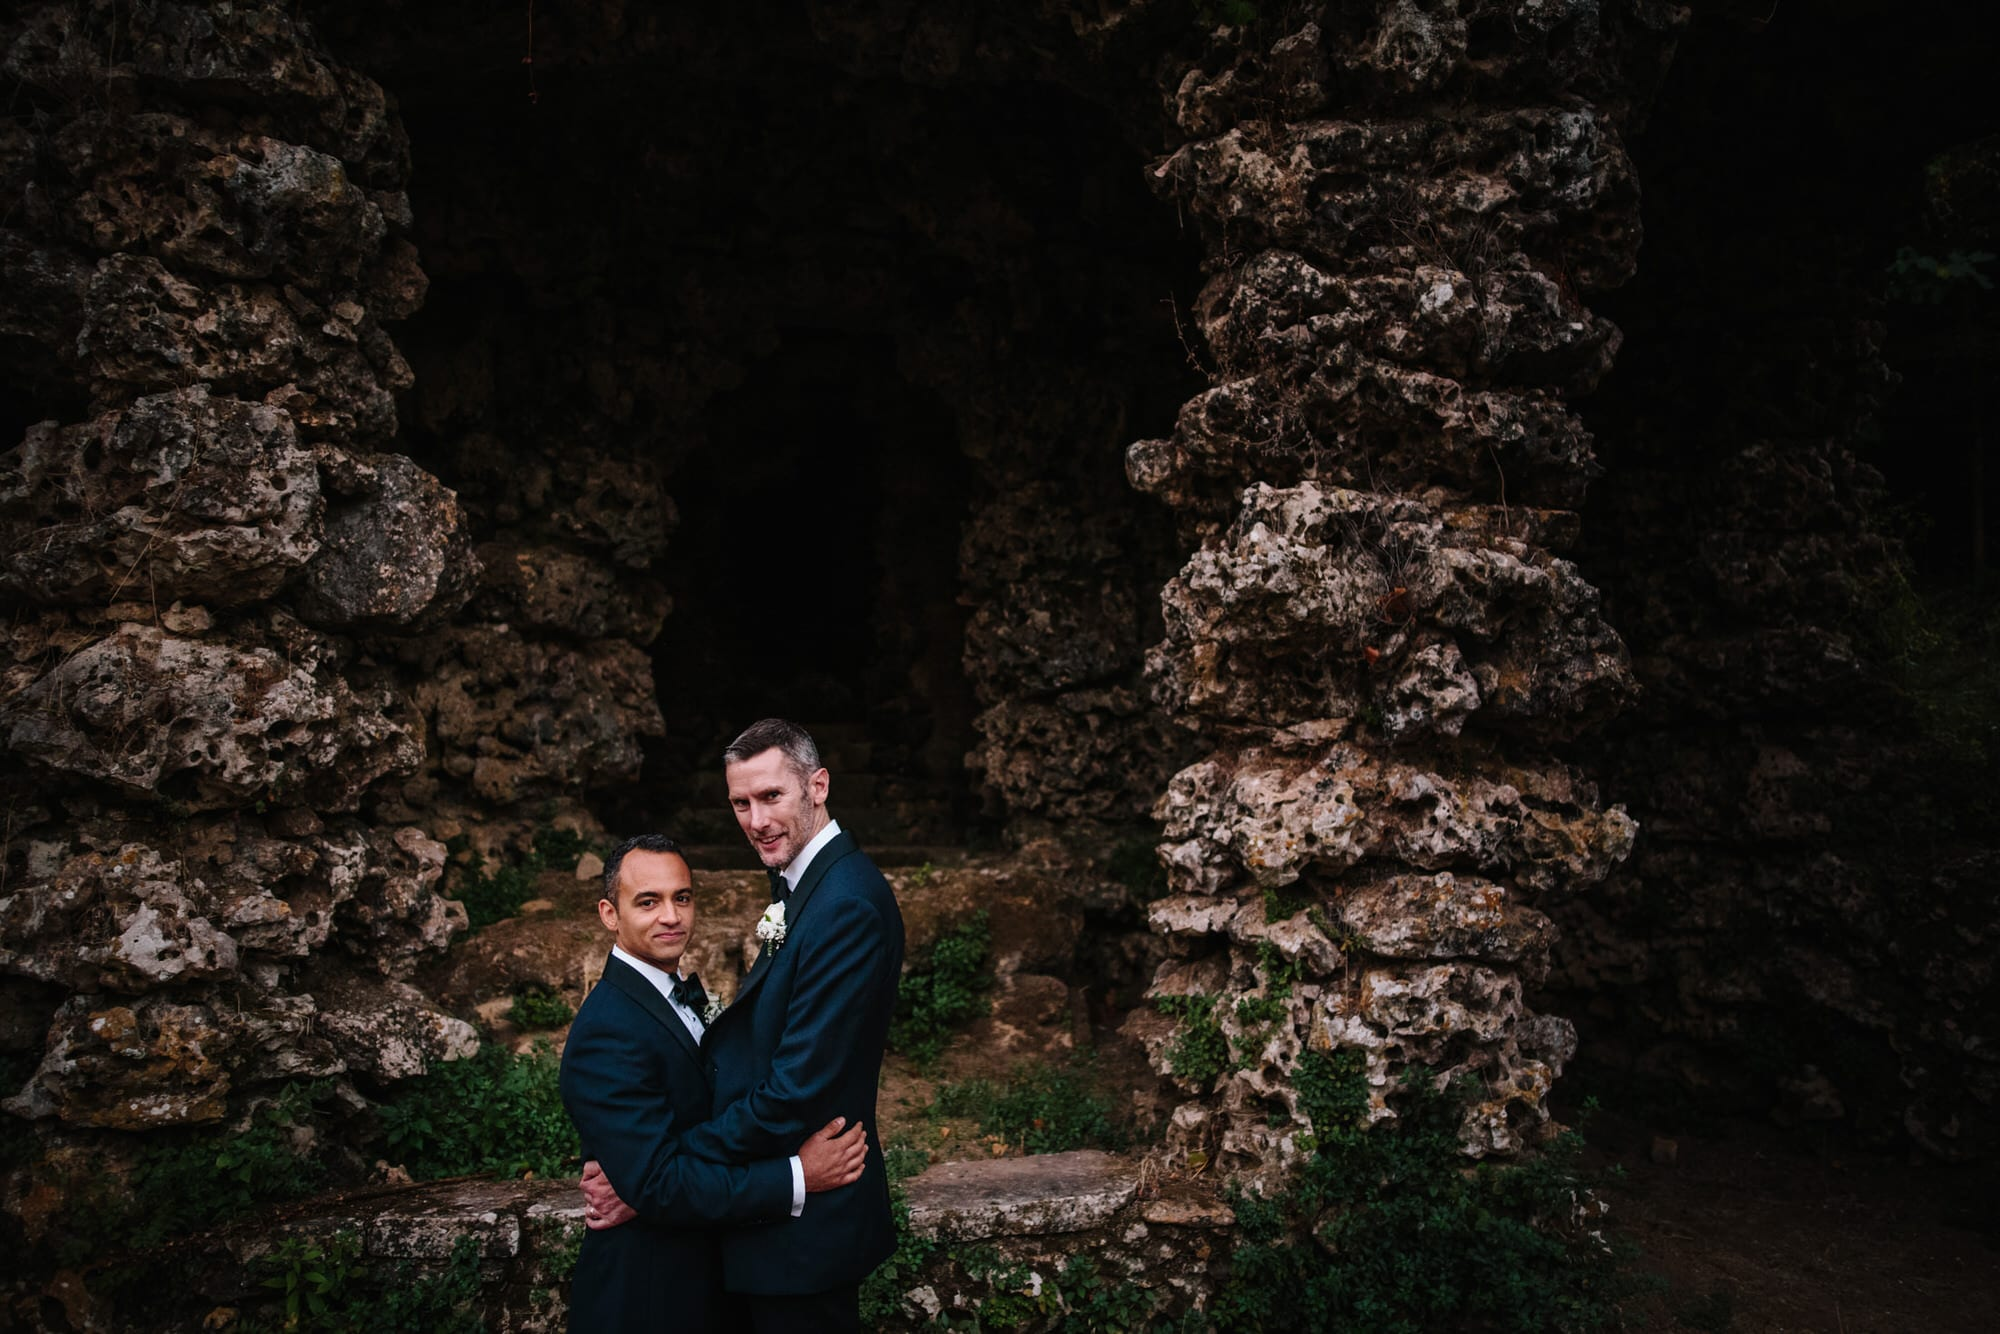 Two grooms pose for their portraits on their wedding day